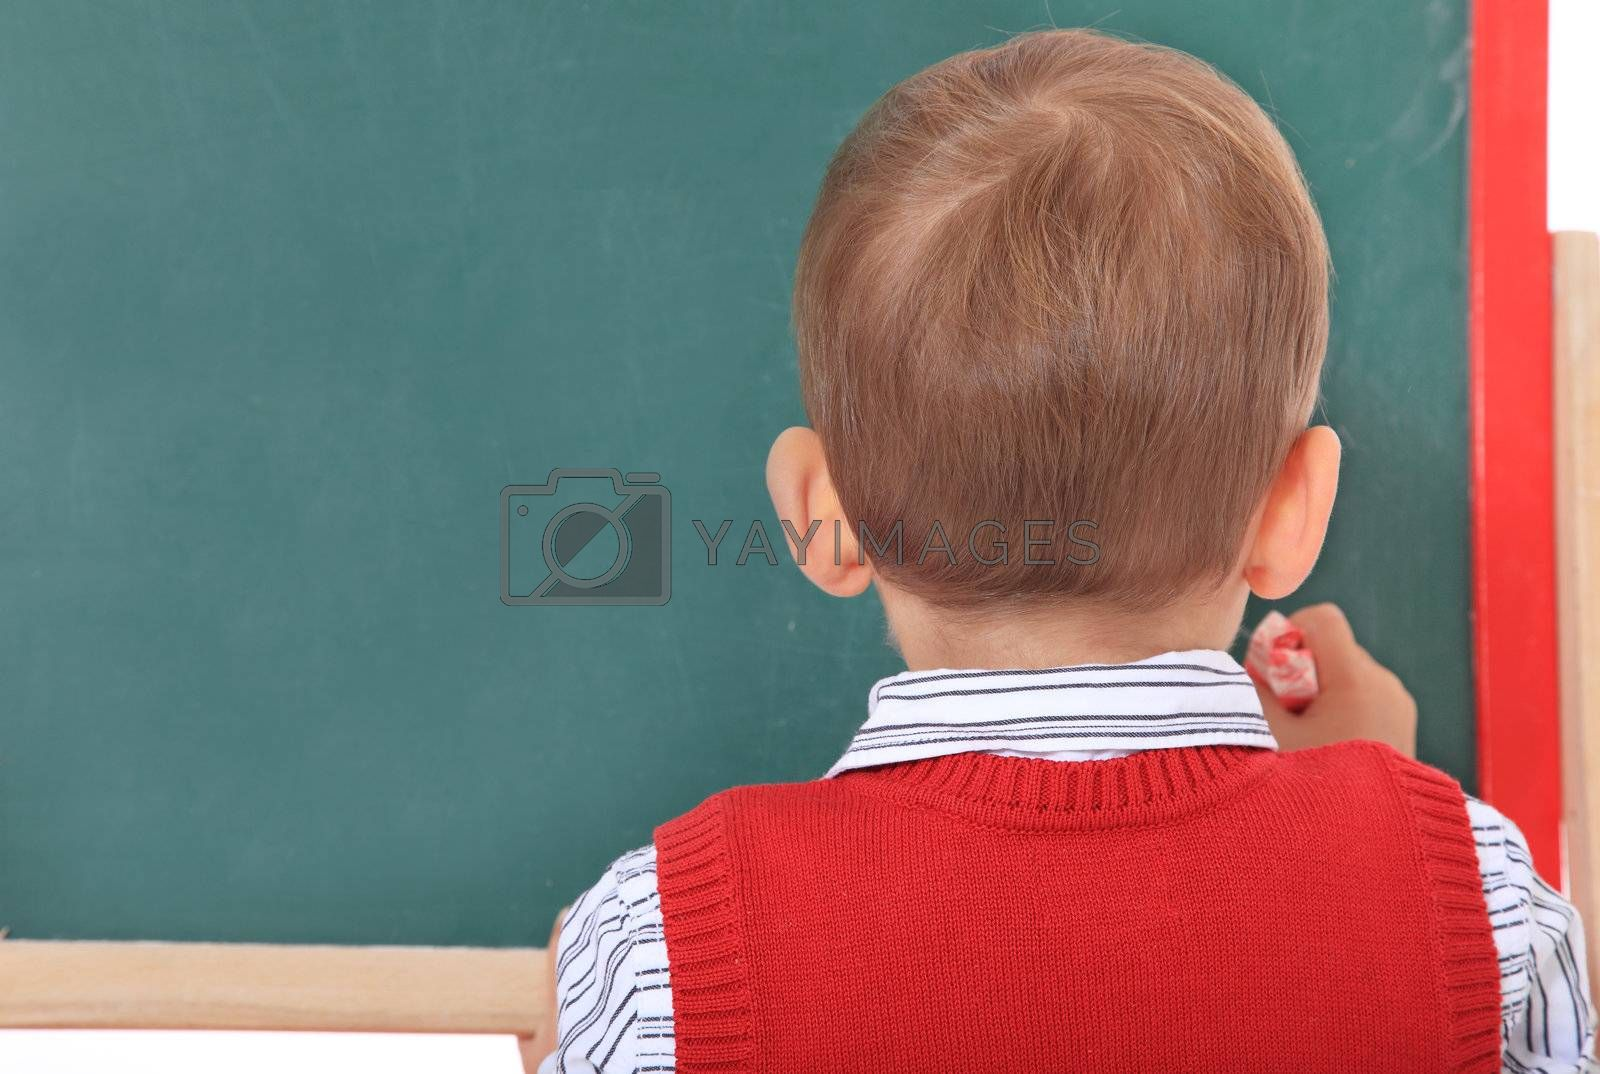 Cute caucasian toddler doodling on chalkboard. All isolated on white background.